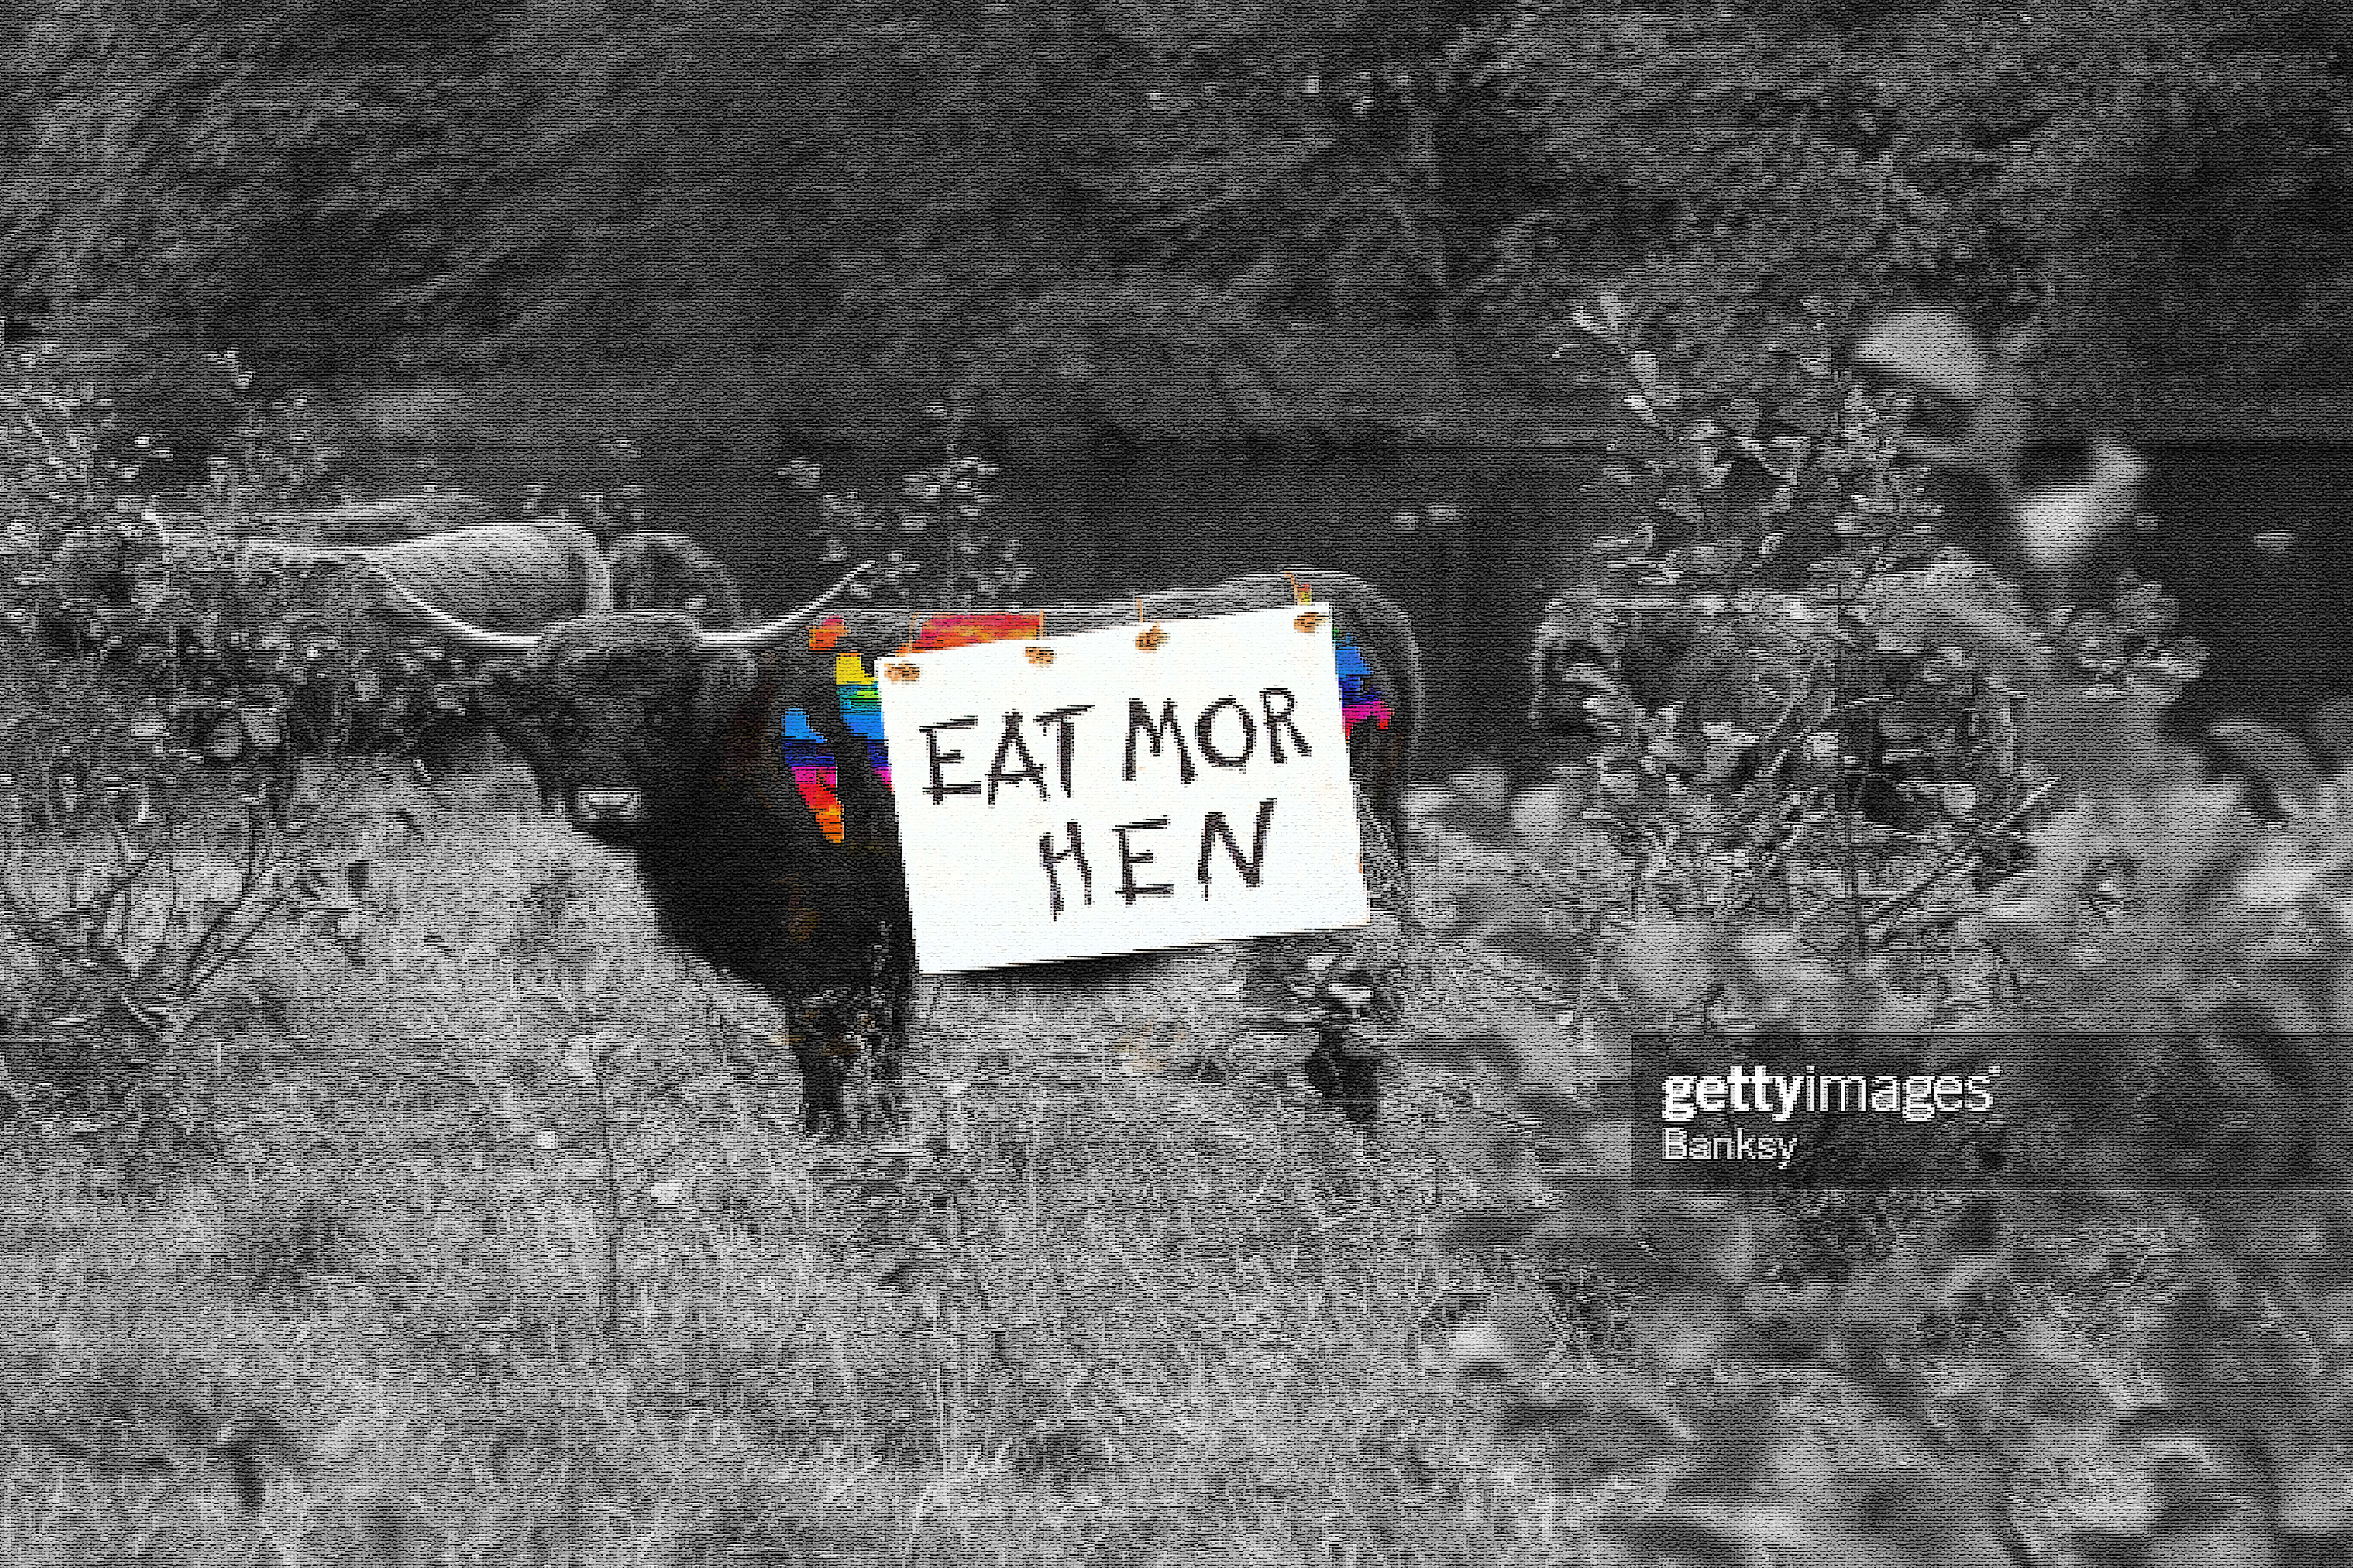 a propoganda piece taking aim at chic-fil-a of a bull with rainbow spots more like than of a cow with a sign that says eat more hen in support of LGBTQ rights. With a Getty Images photo tag as if the lifelike scene was capture by banksy due to its controversiality